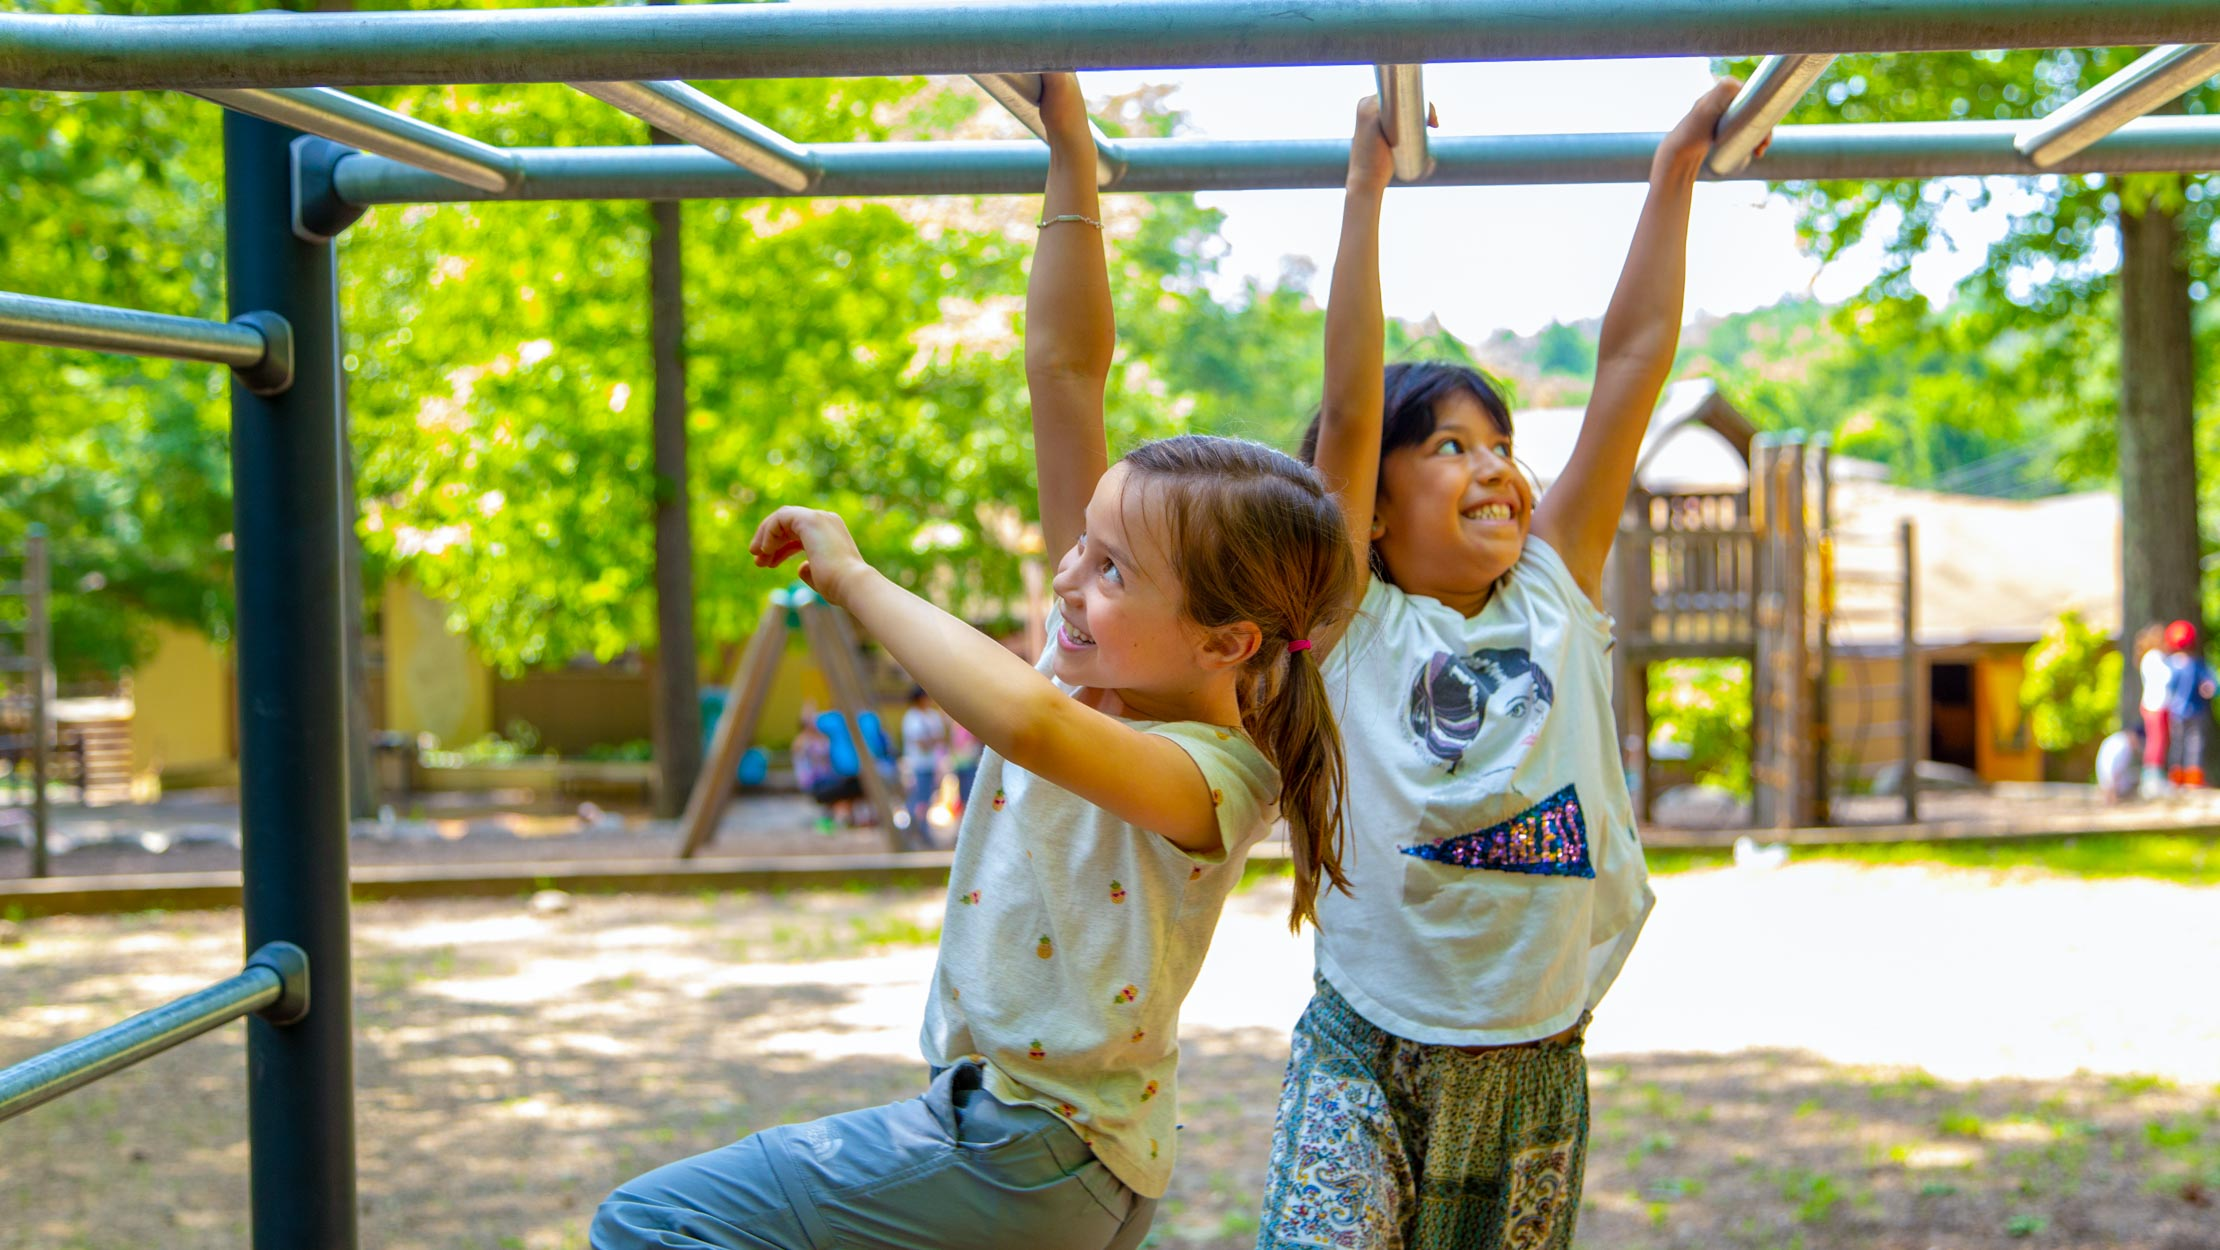 Campers on the monkey bars